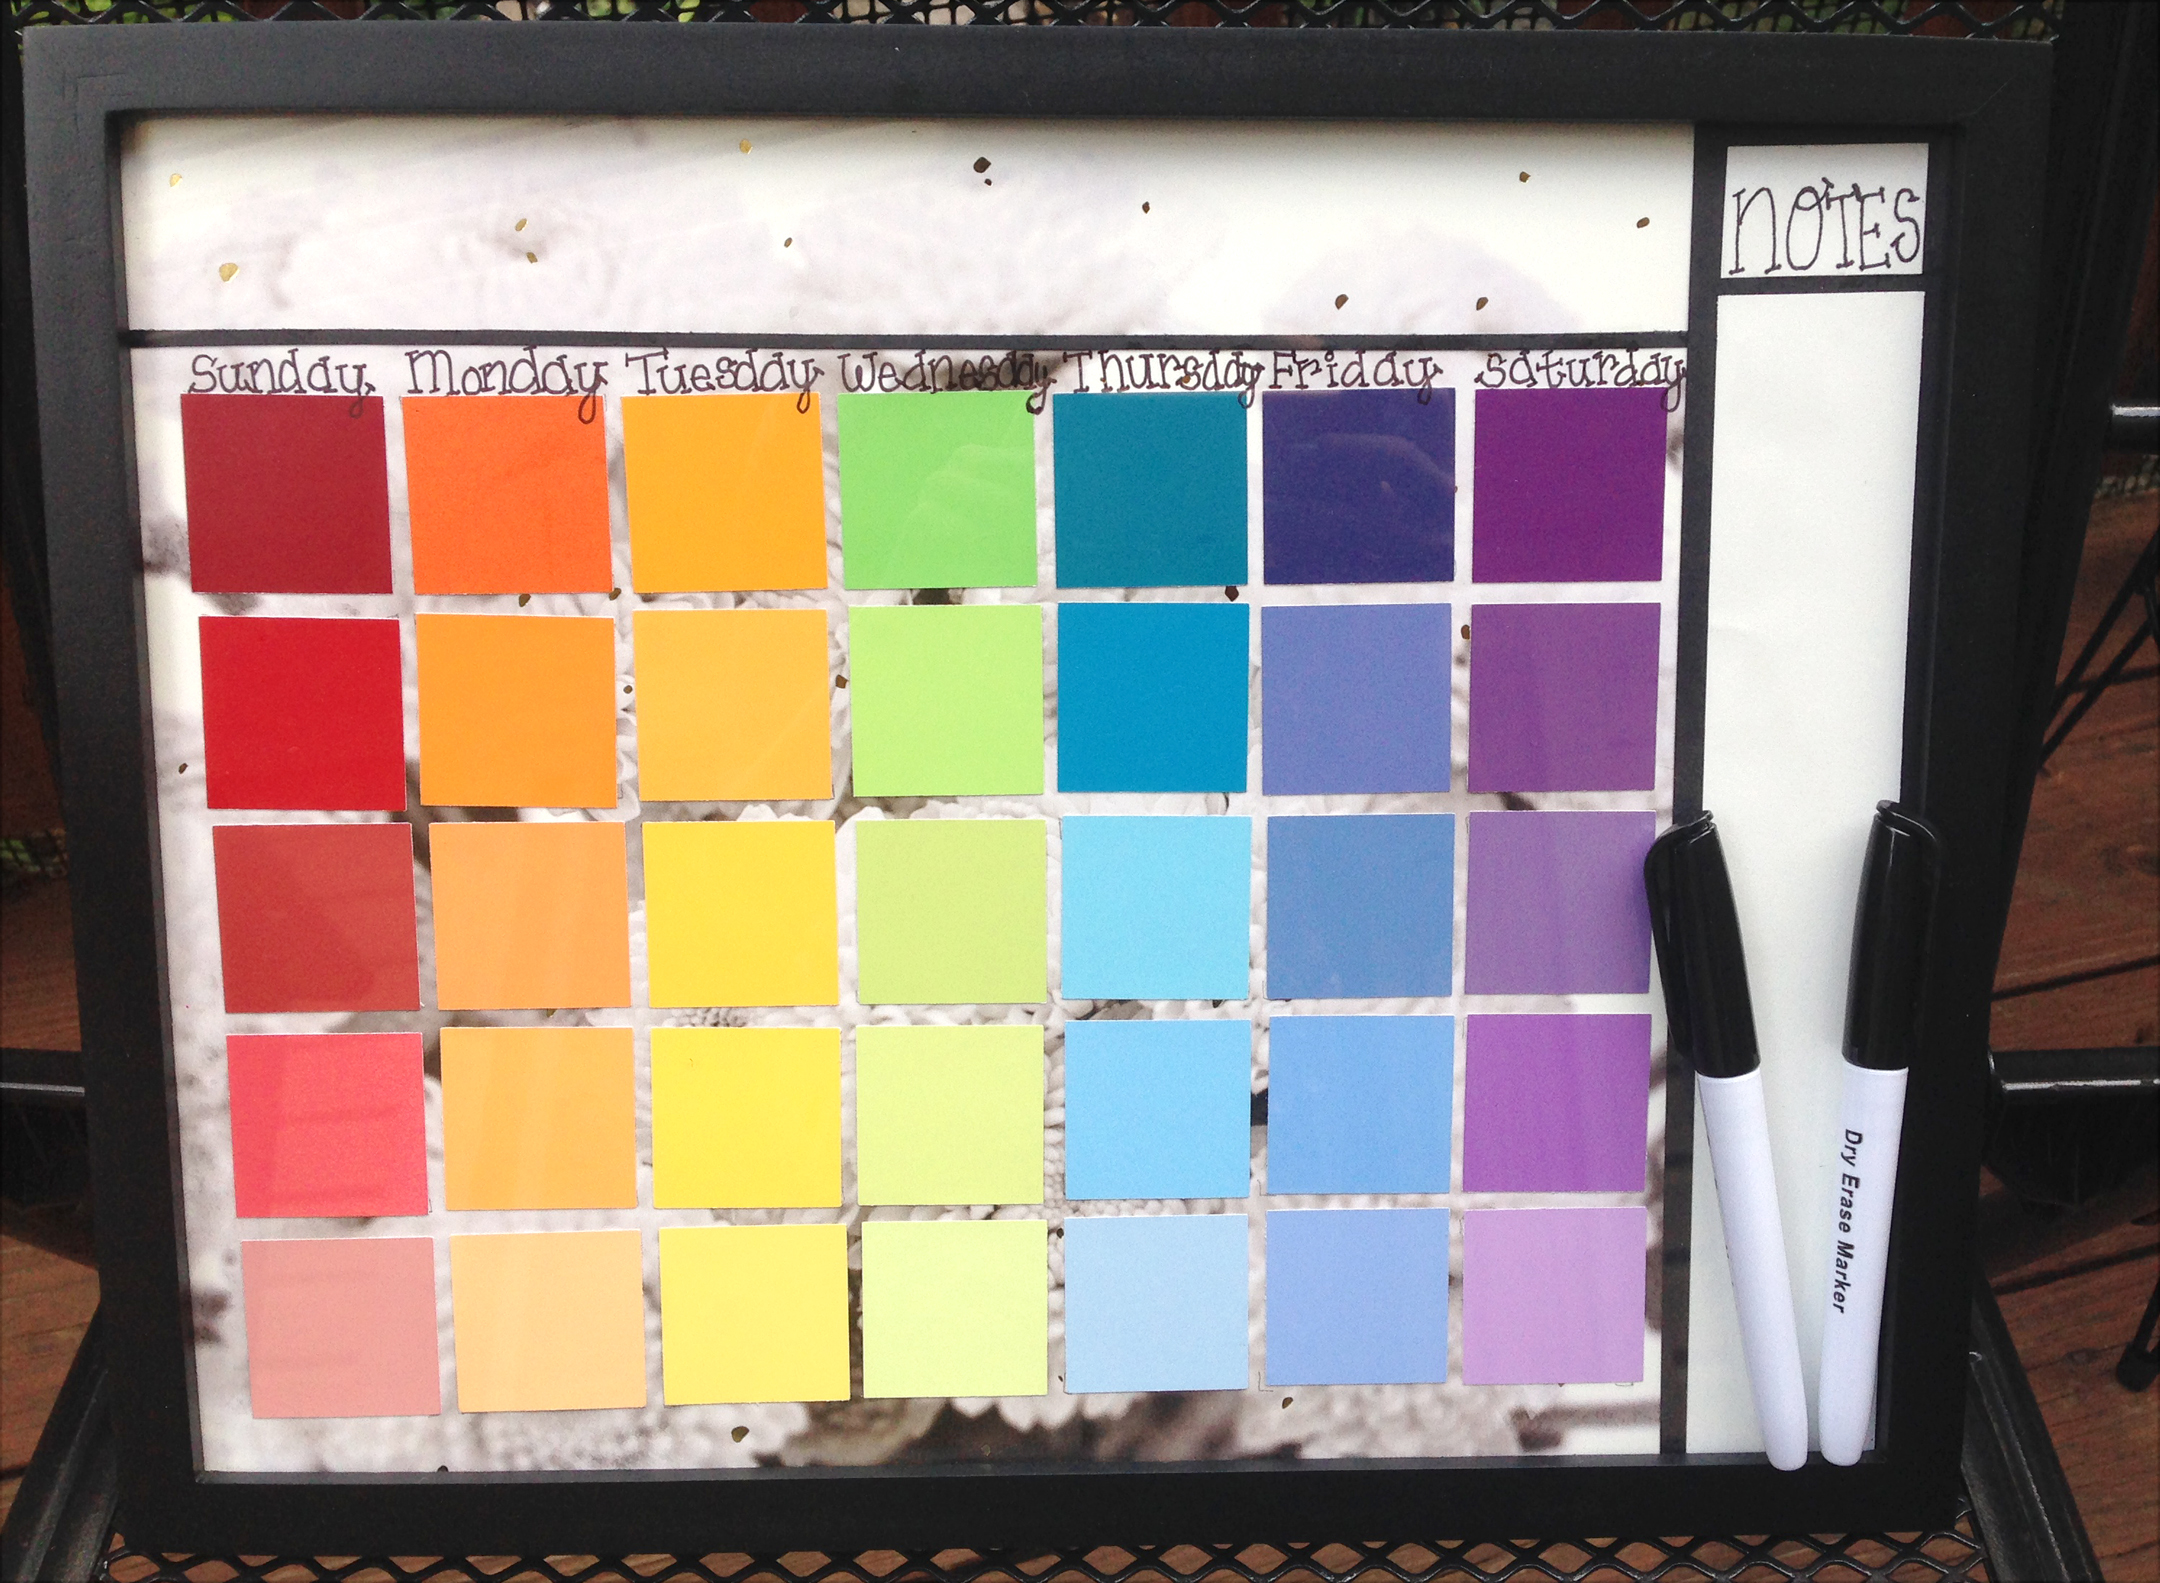 Diy Calendar For School : Diy dry erase calendar with paint samples